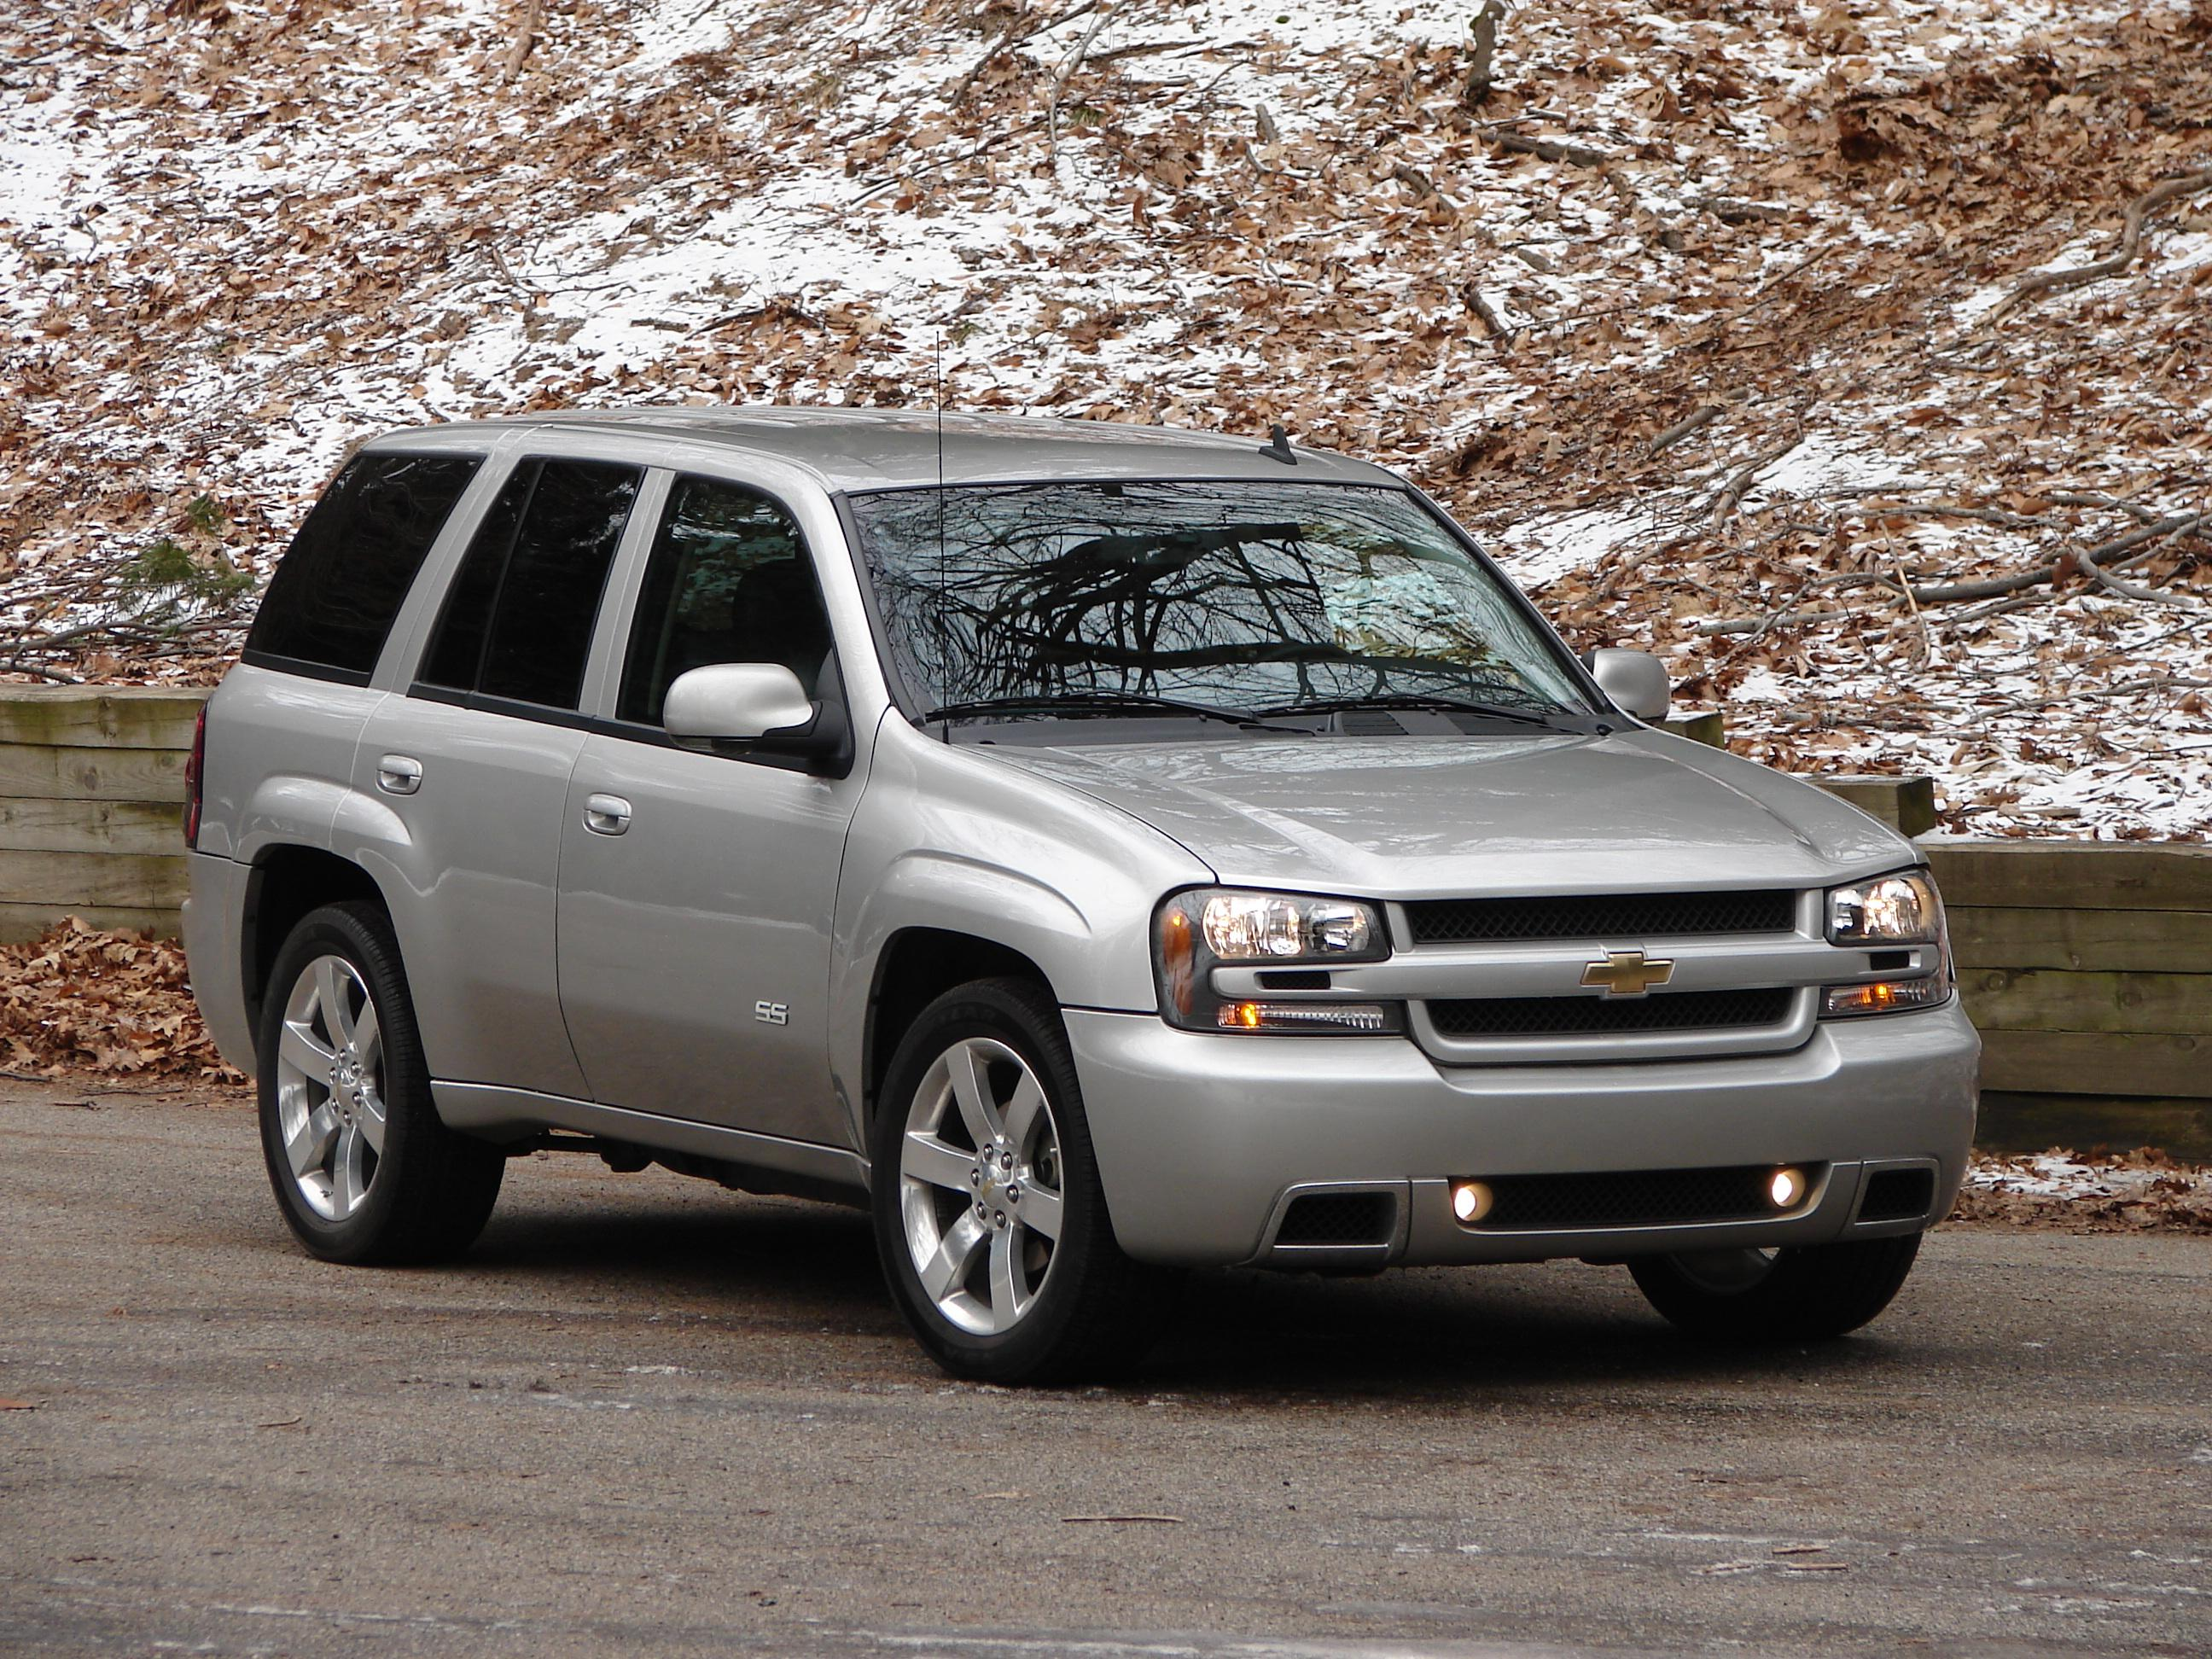 2006 Chevrolet Trailblazer #2